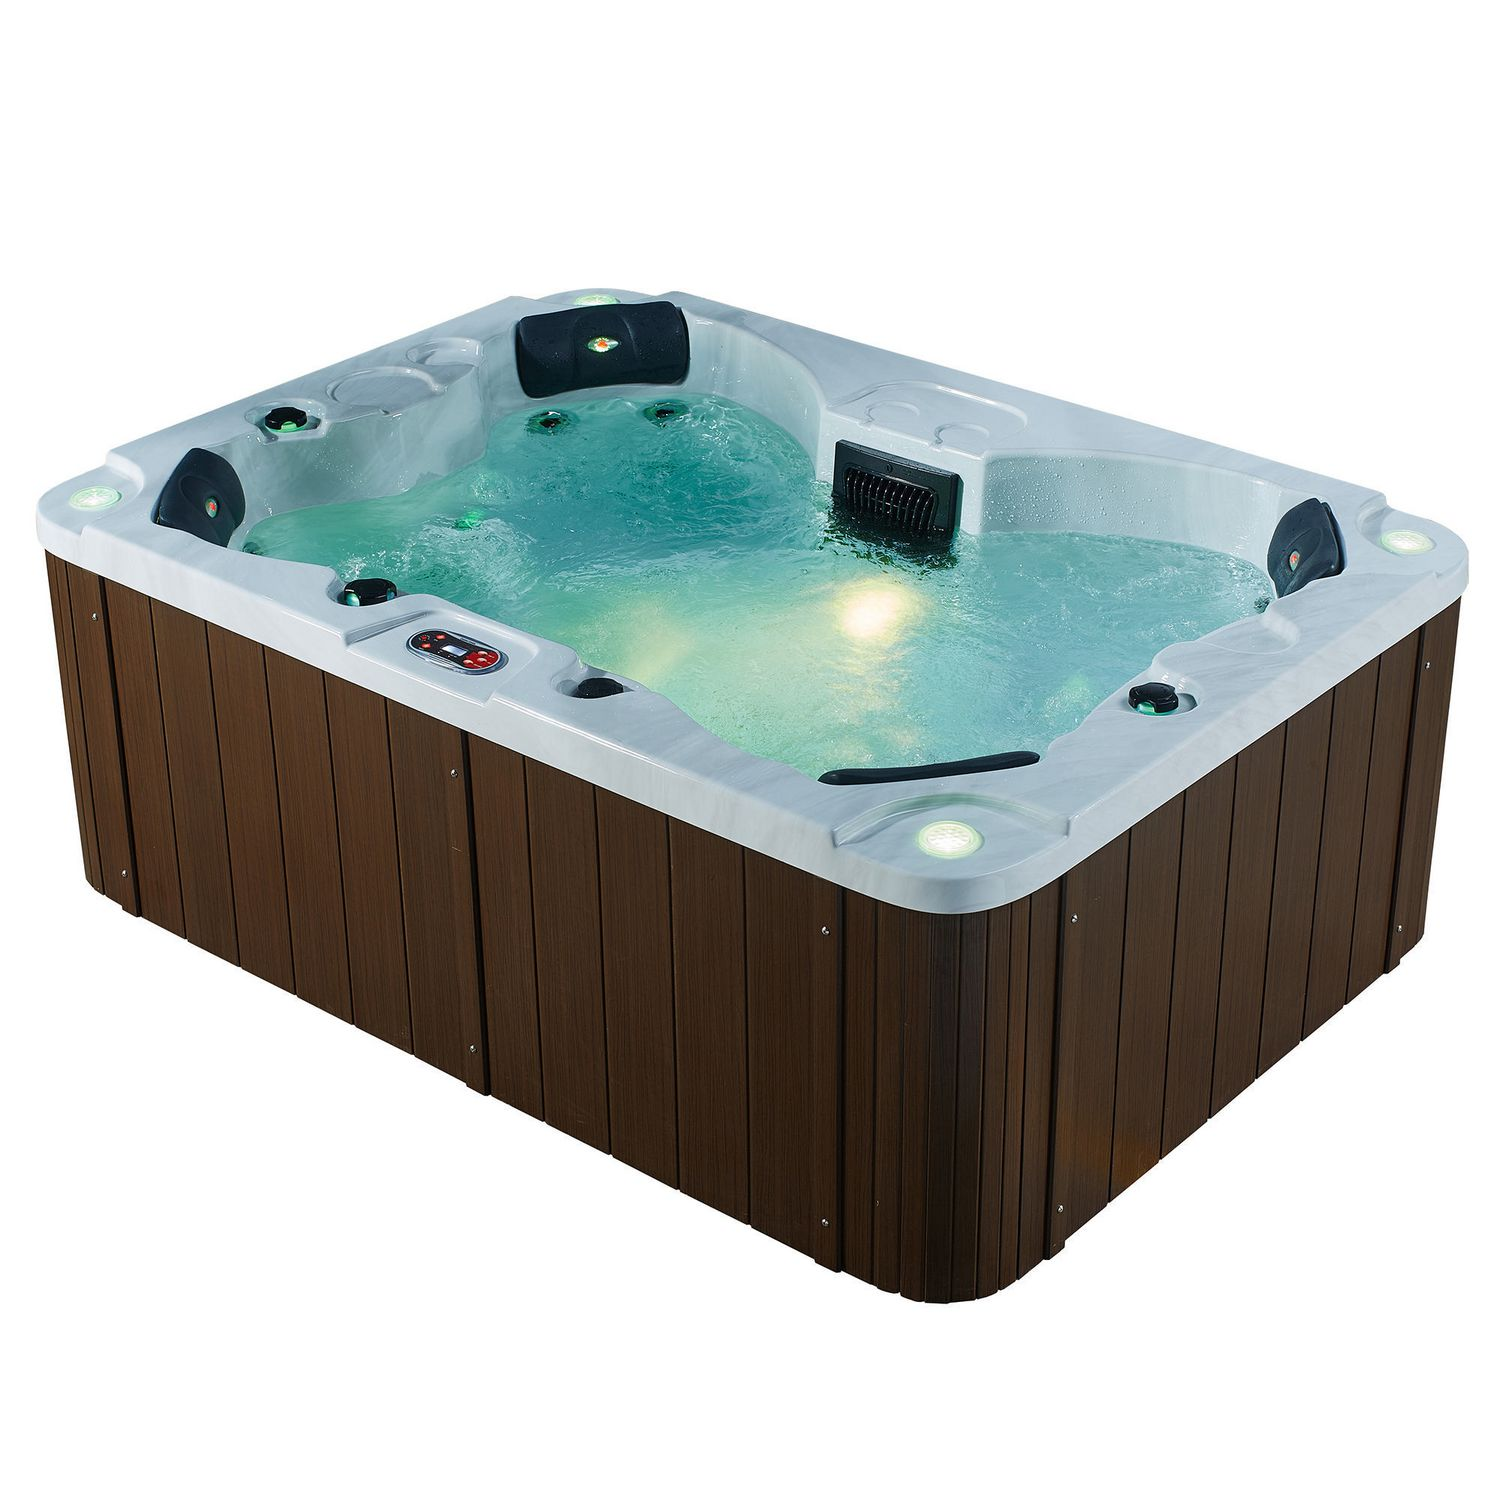 spa home relax ky and just ampool hottub american hot pool it us sales swim richmond to tub leave